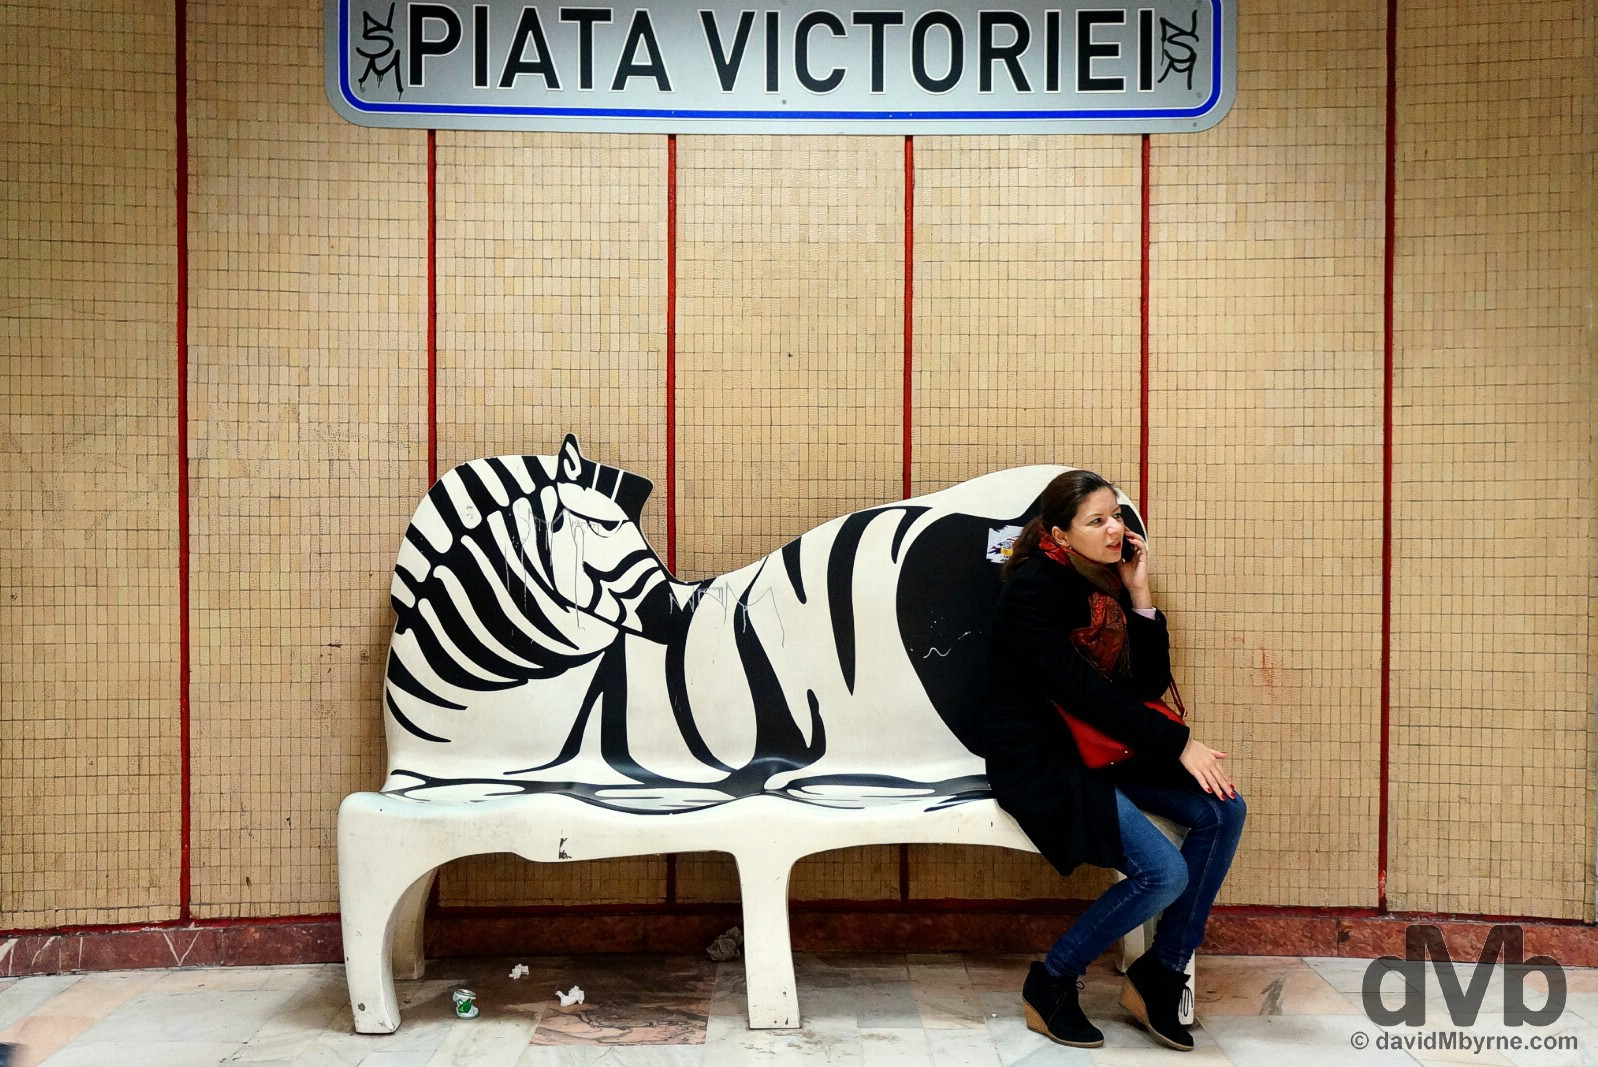 On the platform of Piata Victoriei (Victory Square) underground station in Bucharest, Romania. April 1, 2015.